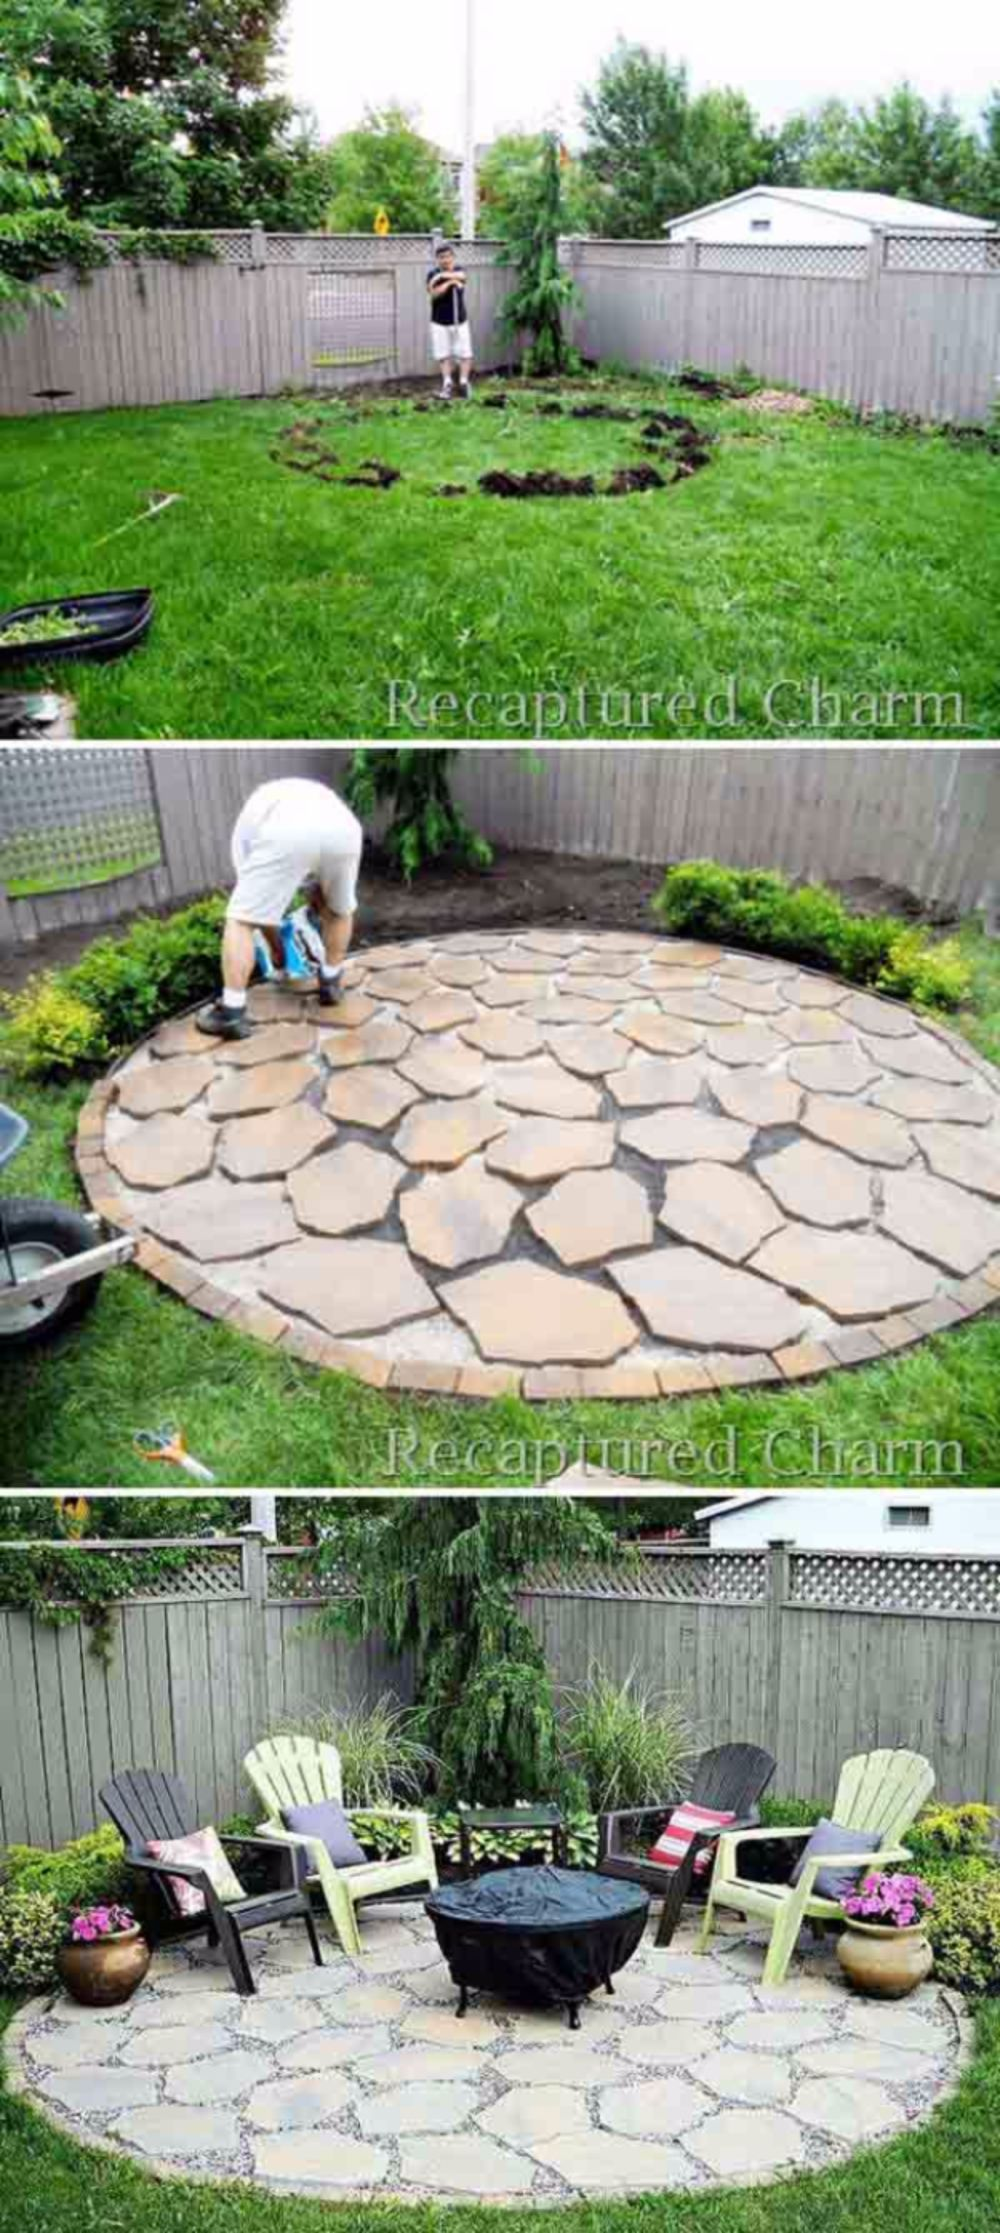 30 DIY Patio Ideas on A Bud